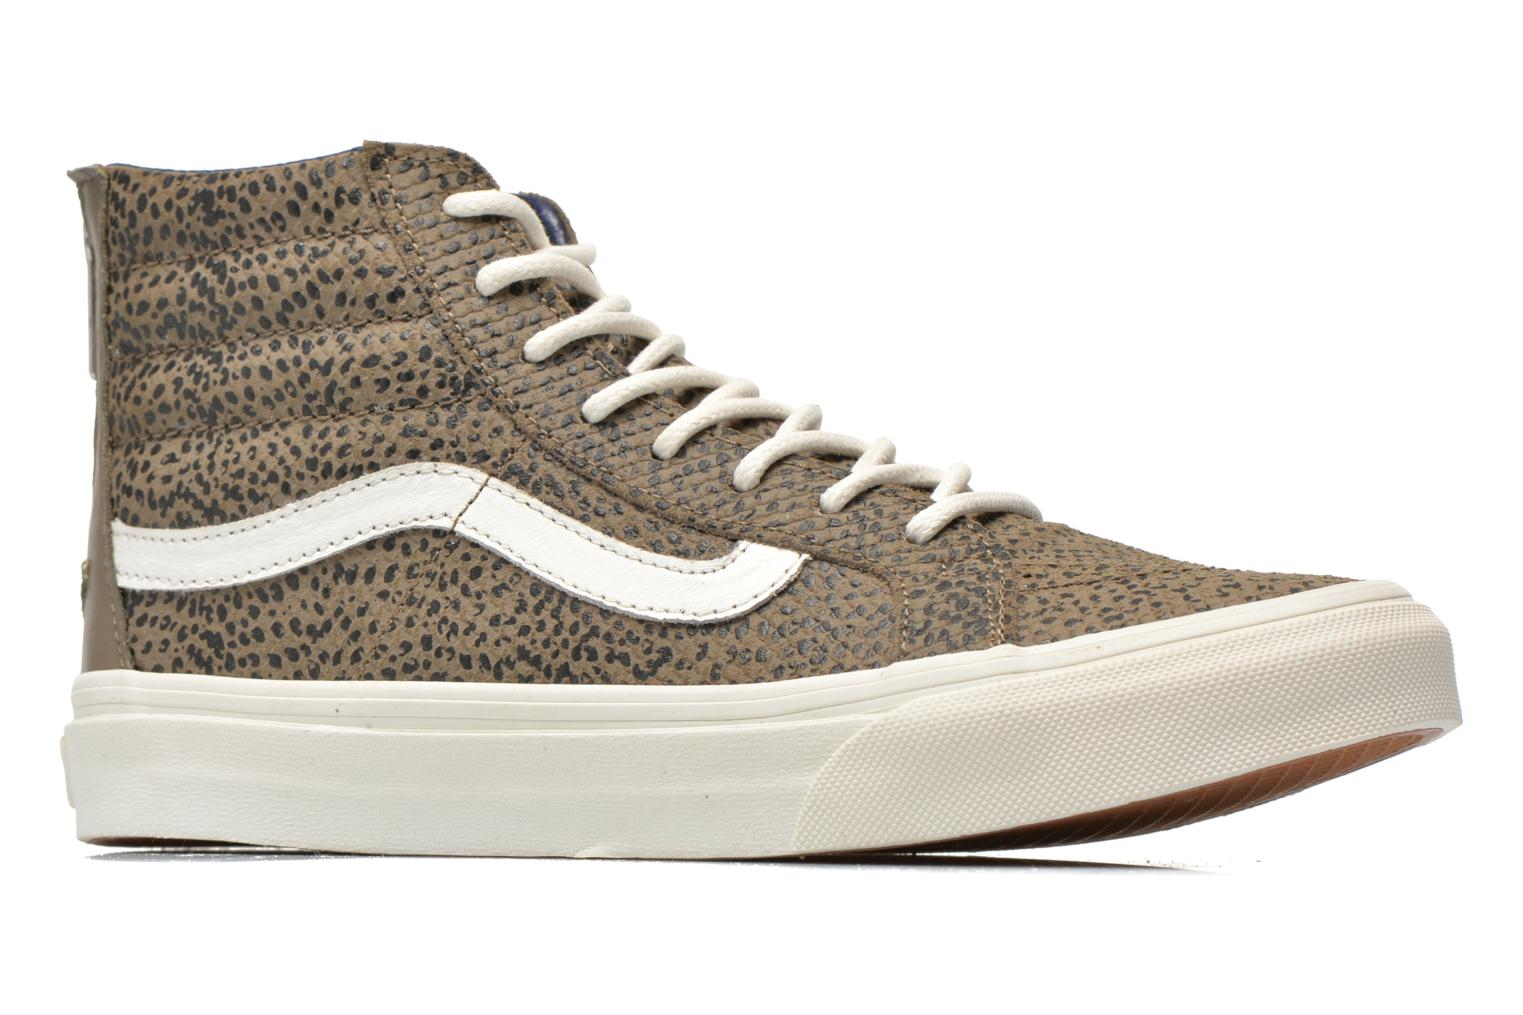 SK8-Hi Slim Zip Cheetah Suede Grey